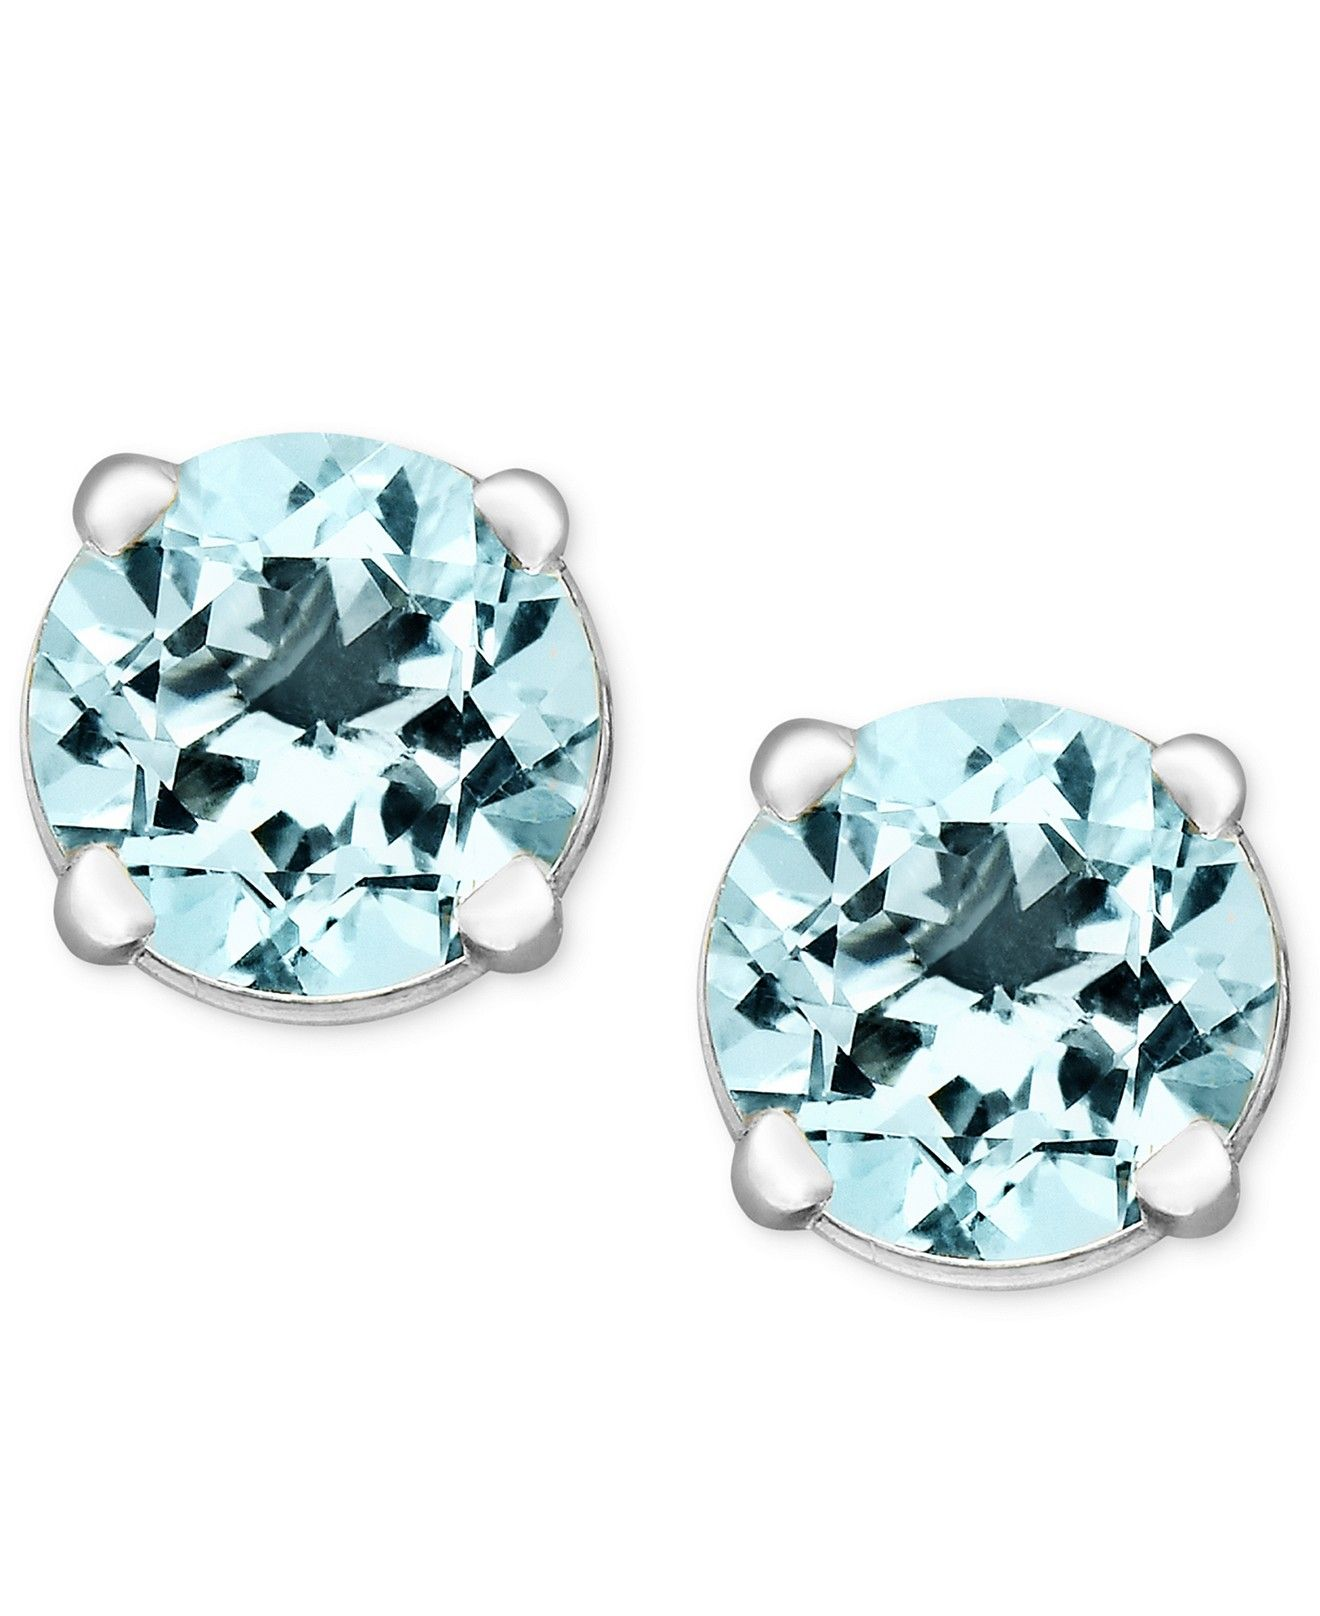 aquamarine larger view in earring gold l earrings and halo studs aqua trendy stud marine assortment ladies for diamond